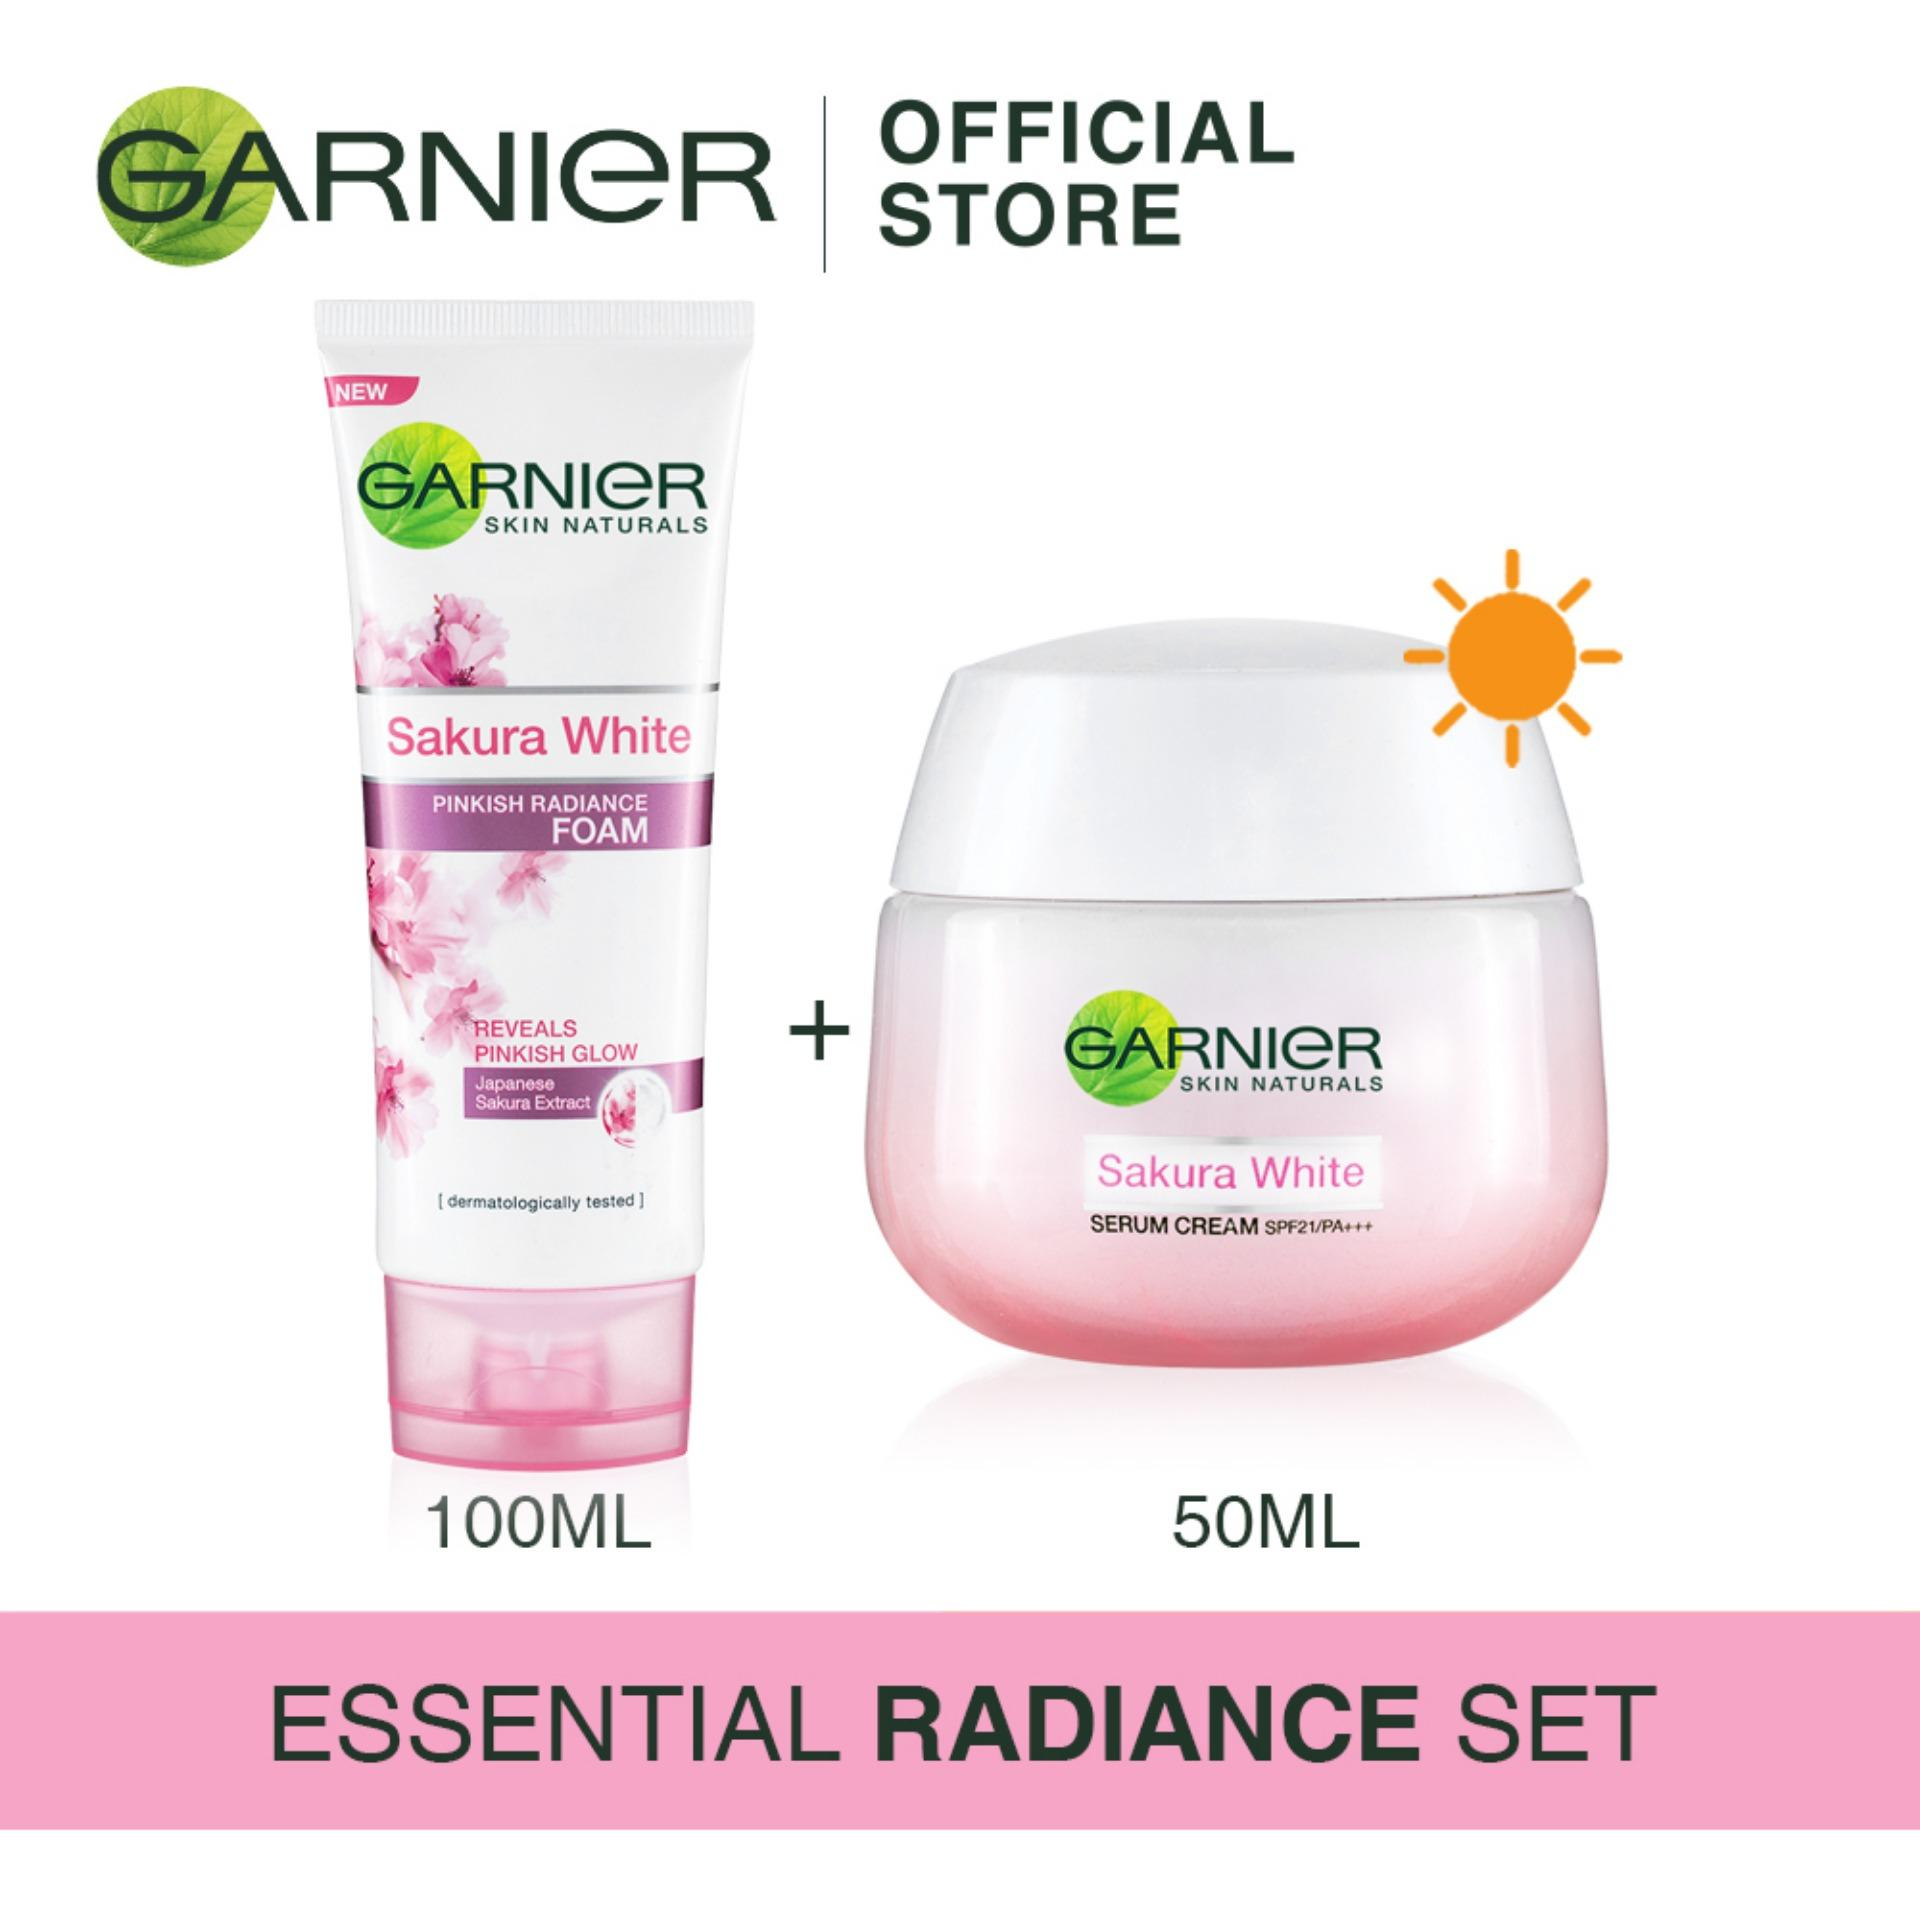 [Essential Radiance Set] Garnier Sakura White Foam 100ml + Day Cream 50ml